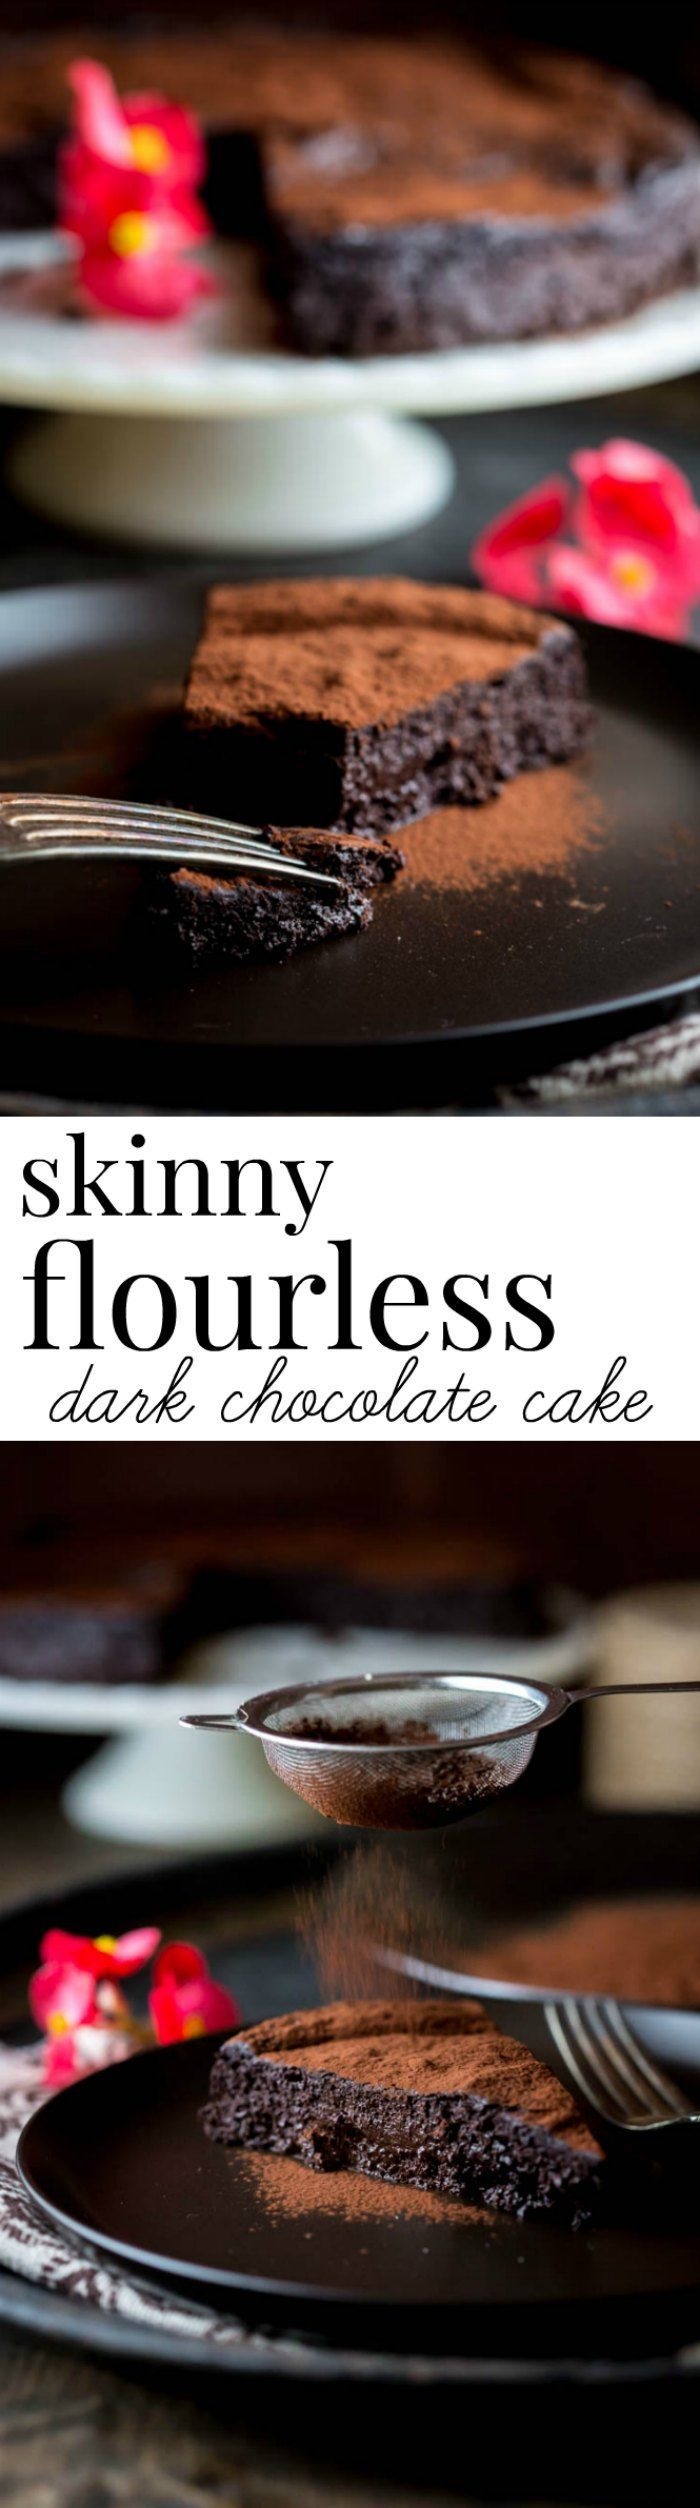 From Healthy Seasonal Recipes : This skinny flourless dark chocolate cake will satisfy your deep dark chocolate cravings with only 217 calories per serving. Gluten-free!